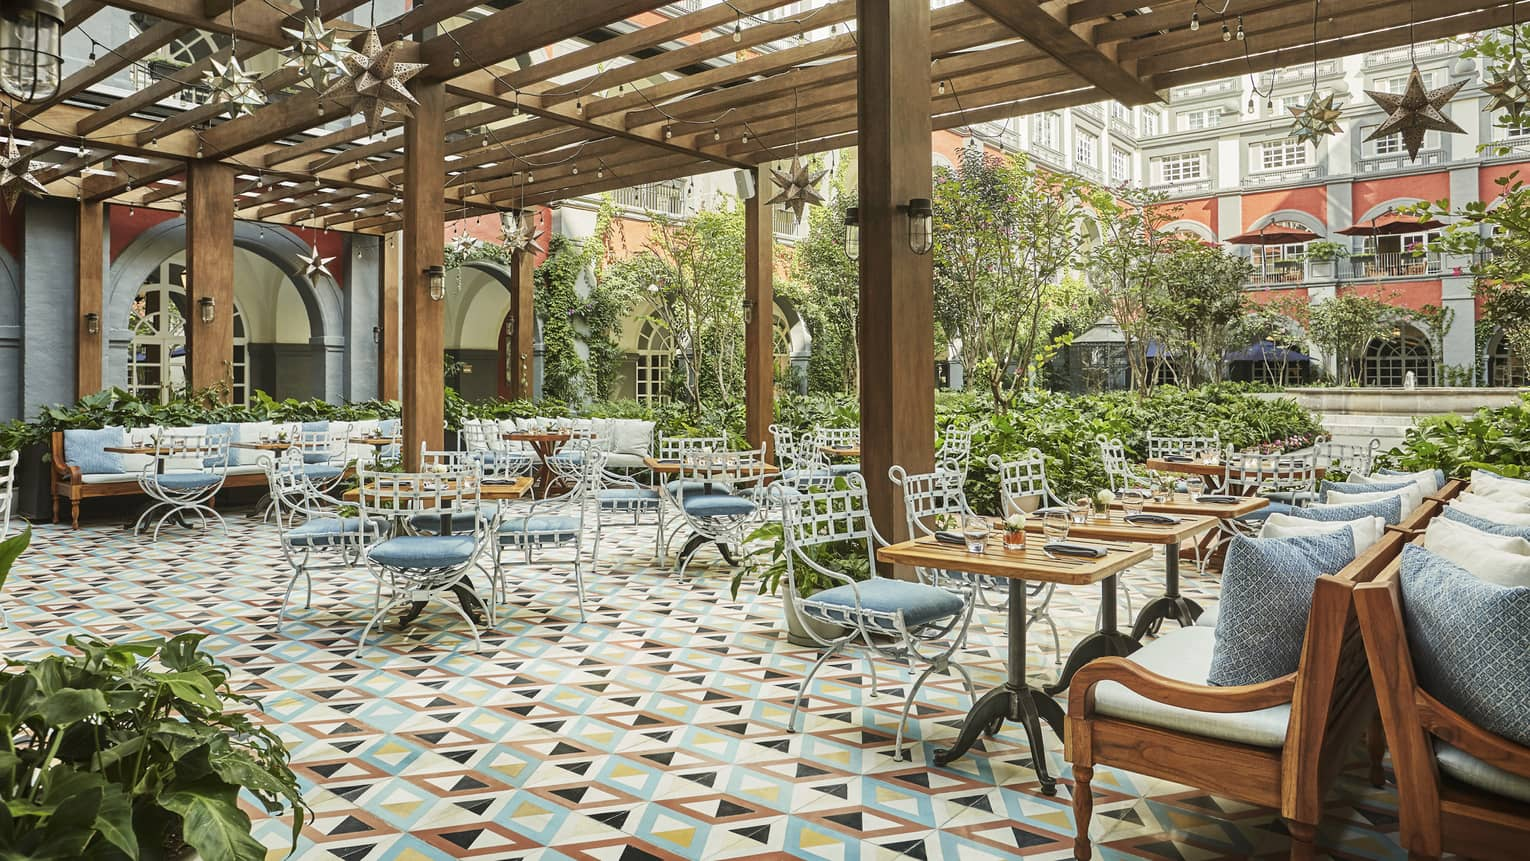 Colourful tiles,  iron patio chairs with blue cushions, tables under awning on Zanaya terrace